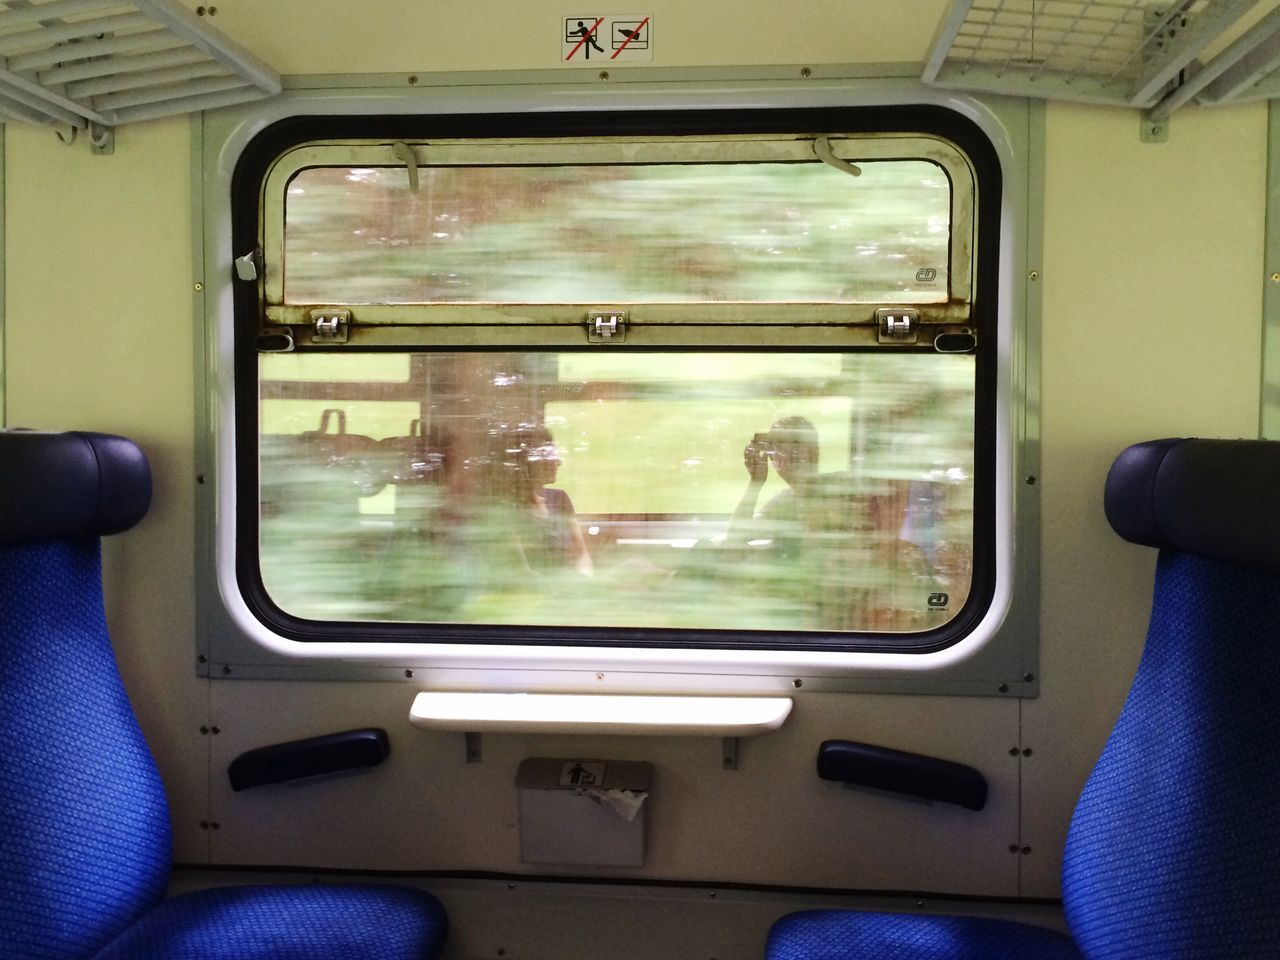 On the train in the Czech Republic. Photo by Tom Bland. Transportation Window Train Interior IPhoneography IPhone Europe Travel Traveling Travellers Travelling Travelers Adventure Exploring Czech Republic Couple Reflection Together Train Travel Journey Motion Memories Moment Train Car Vacations Holiday